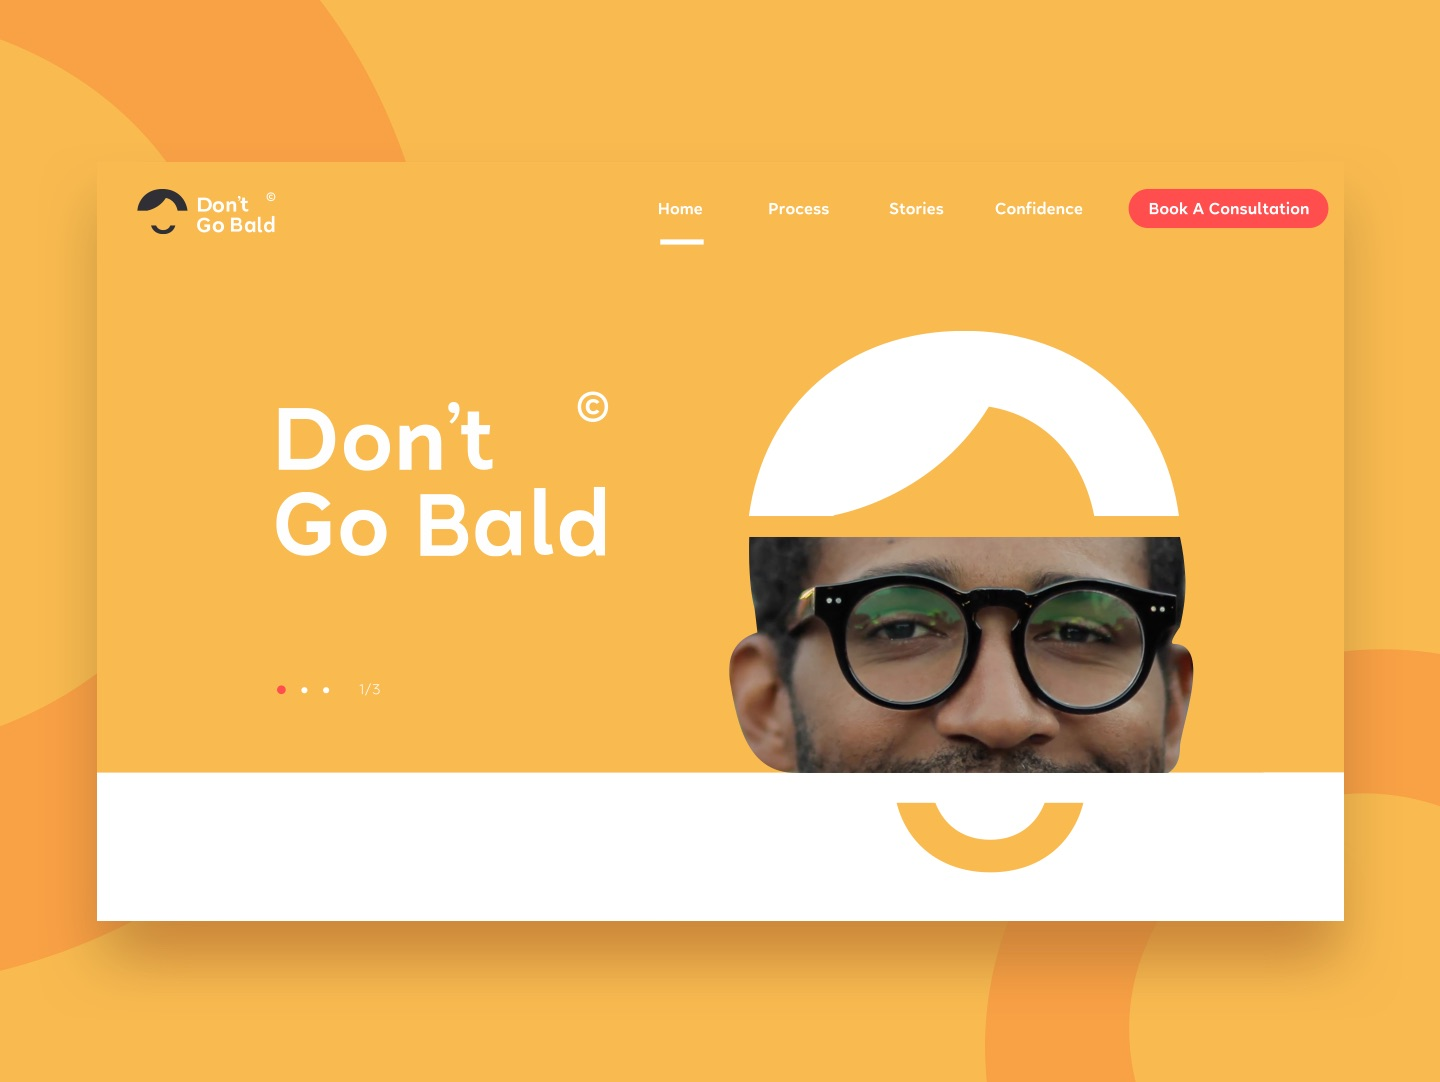 Don't go bald website hero